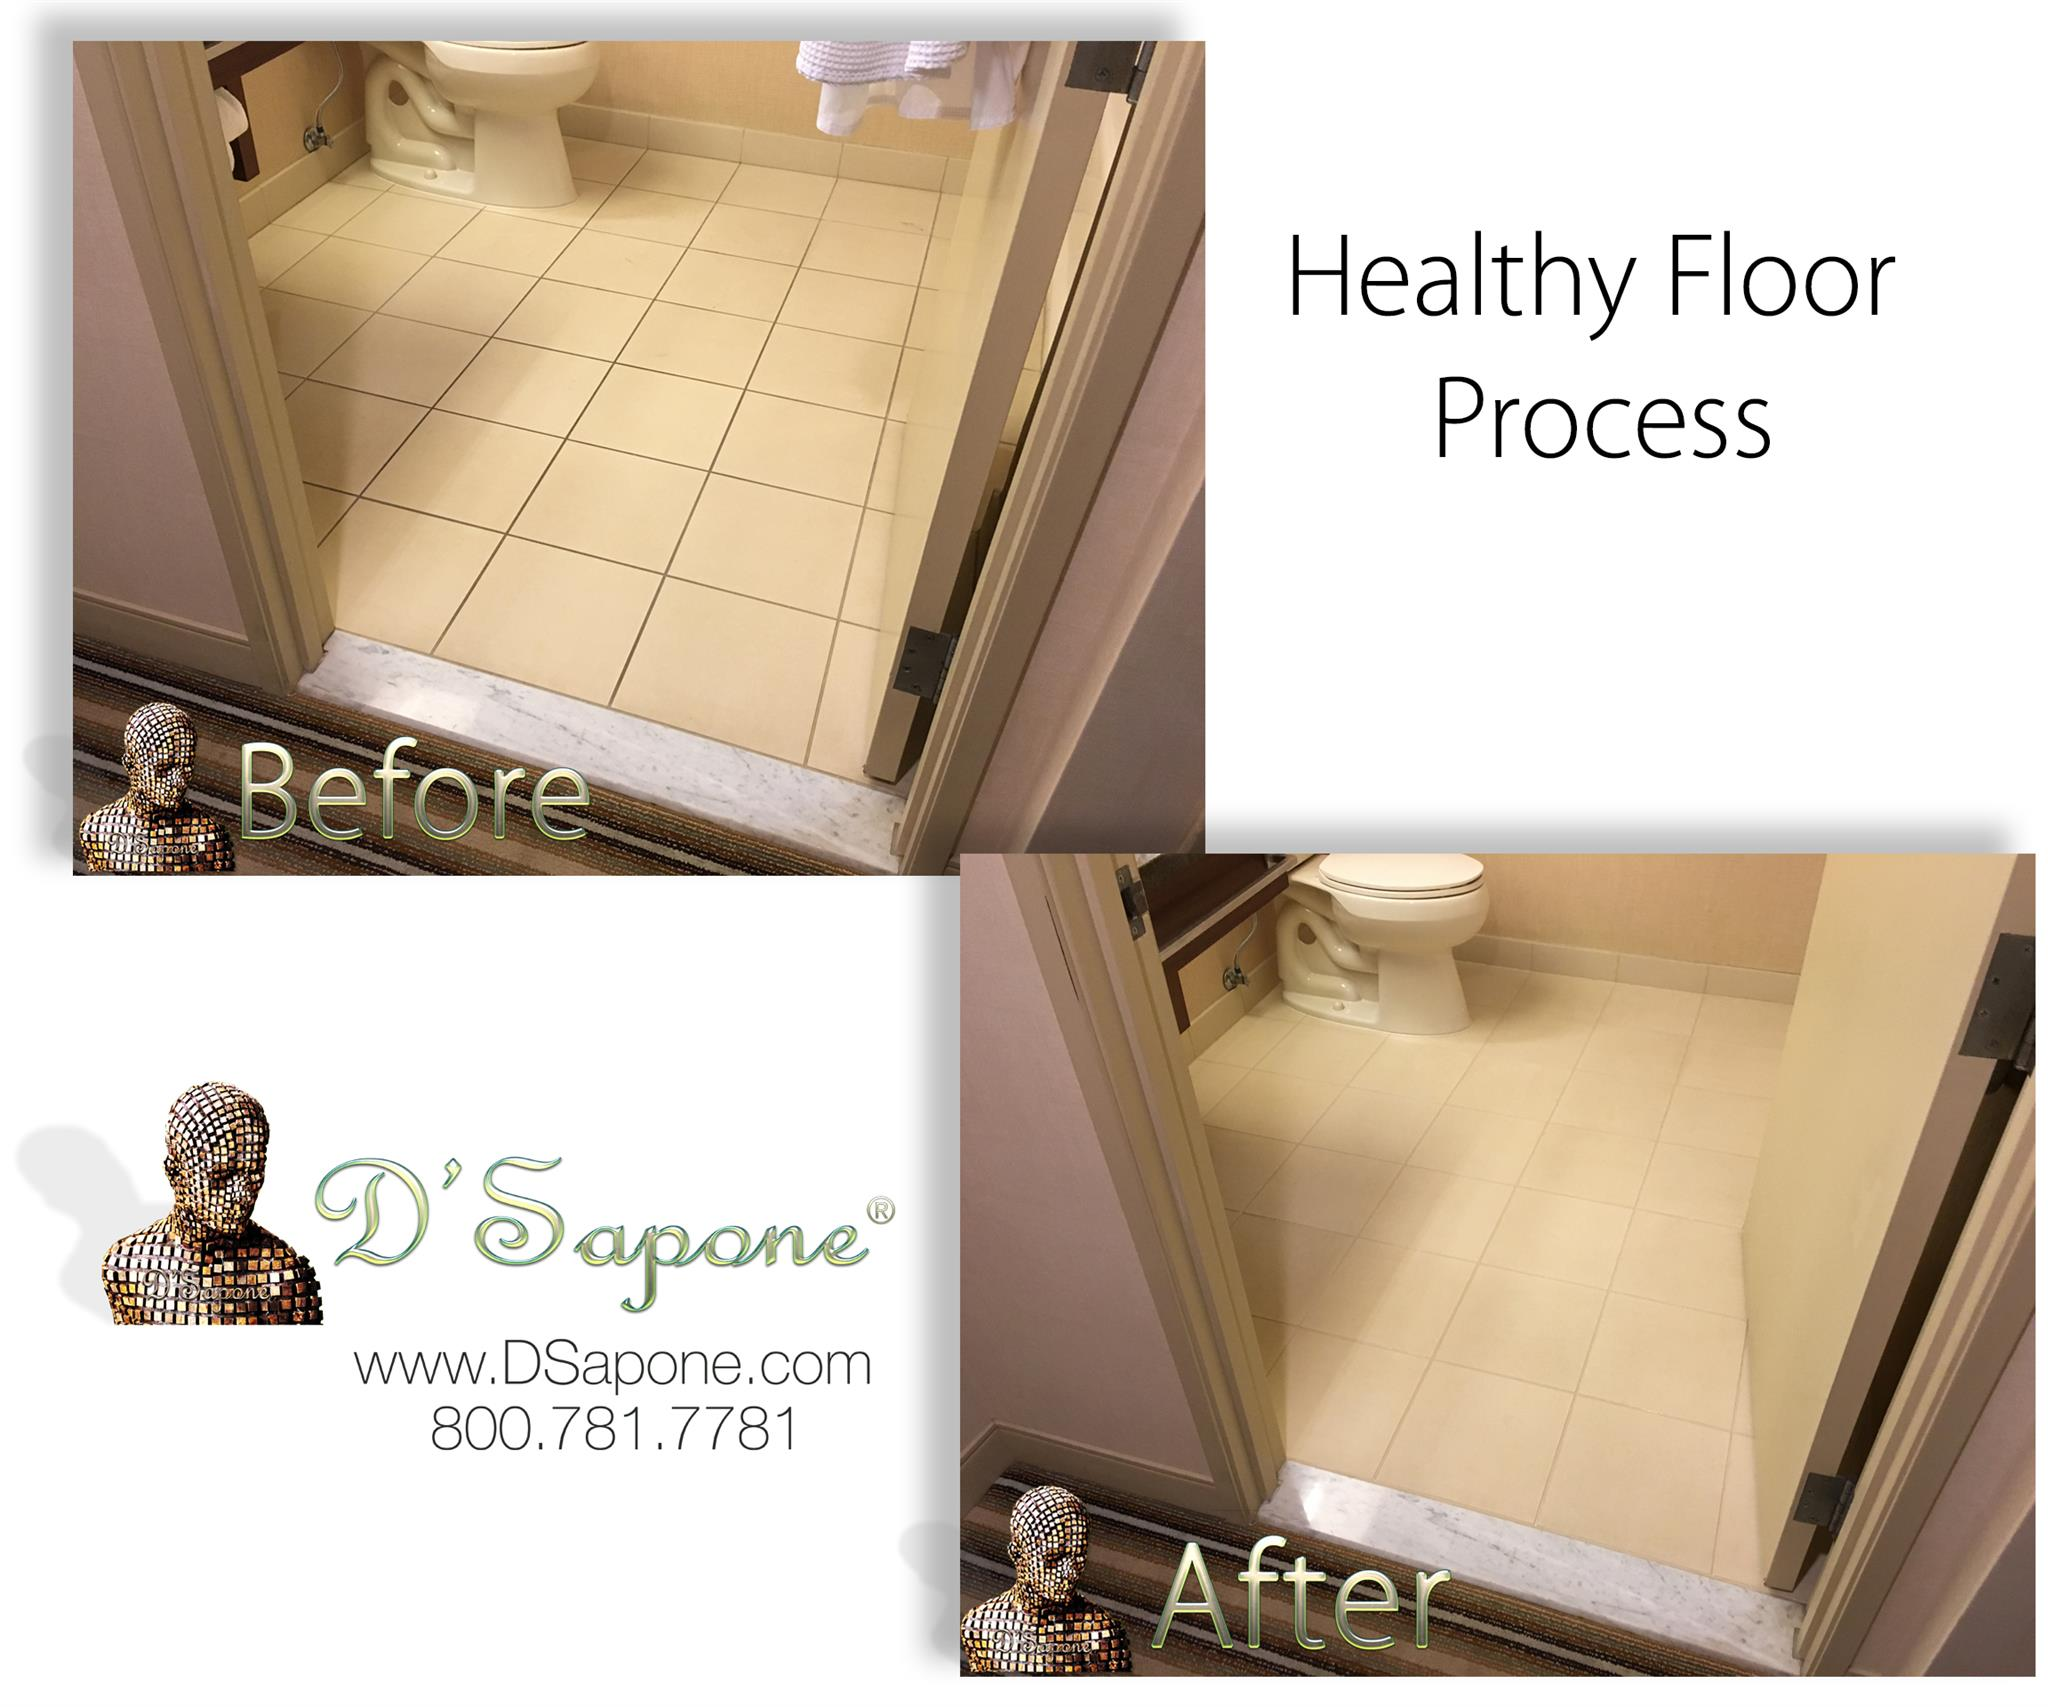 Tile and Grout Cleaning in California - San Diego | D'Sapone